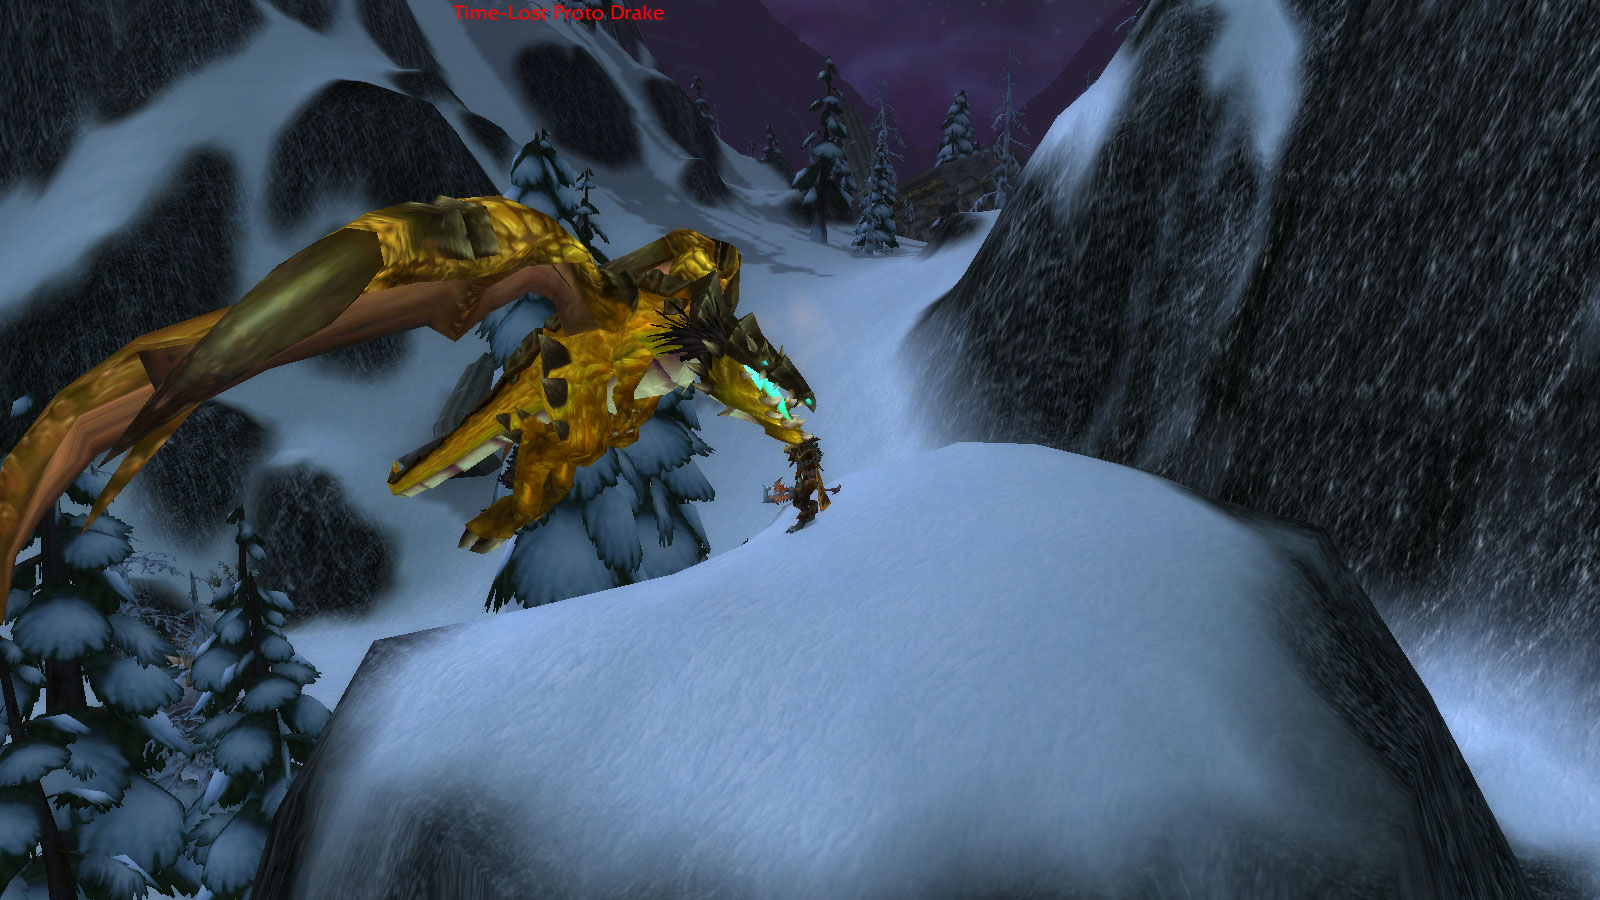 WoW Rare Spawns: Time-Lost Proto-Drake - Reins of the Time-Lost